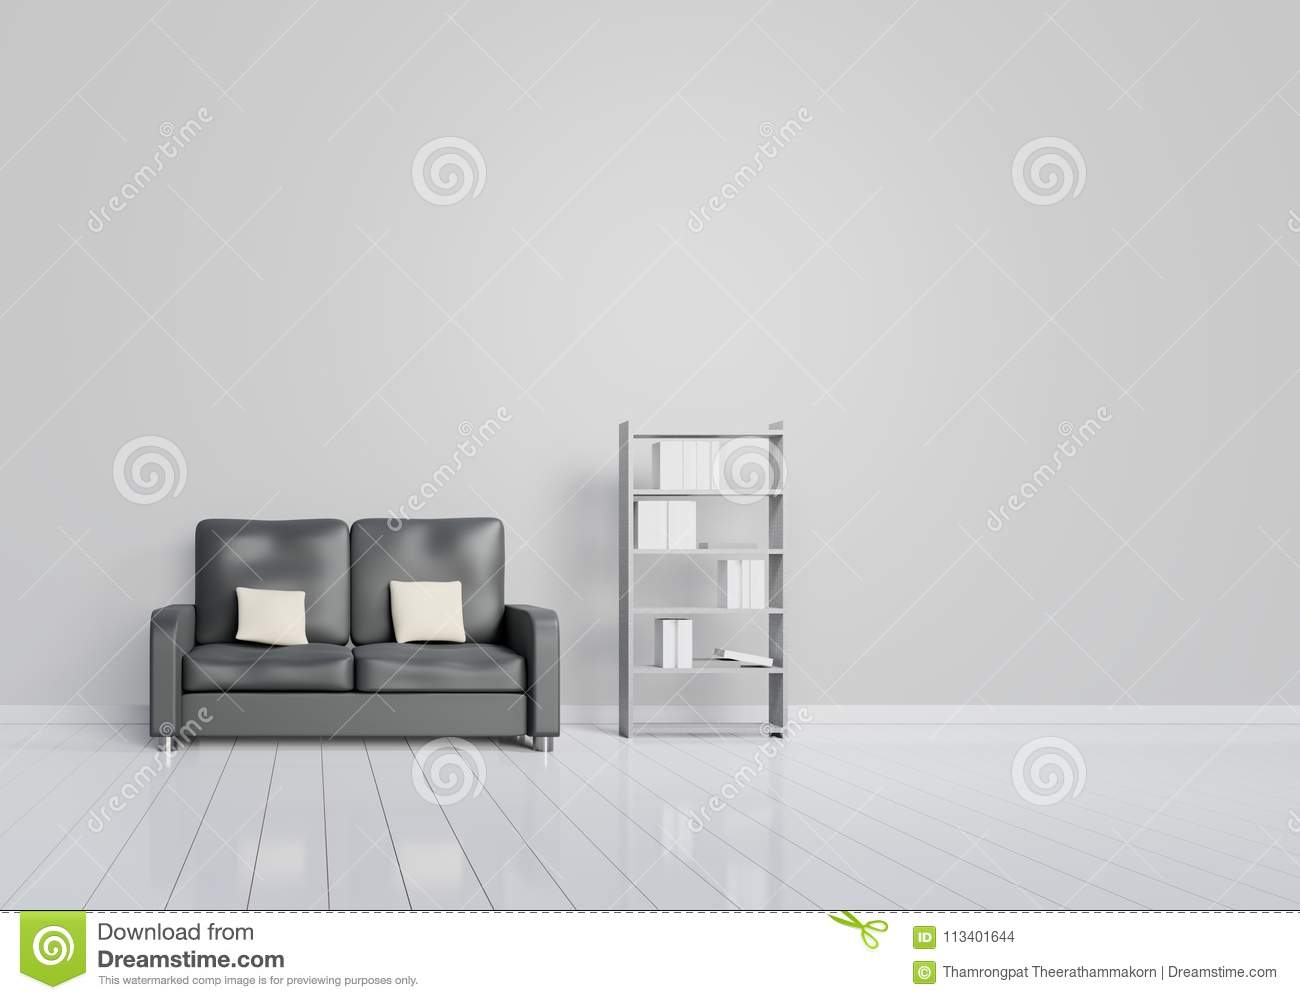 Admirable Modern Interior Design Of Living Room With Black Sofa With Beatyapartments Chair Design Images Beatyapartmentscom